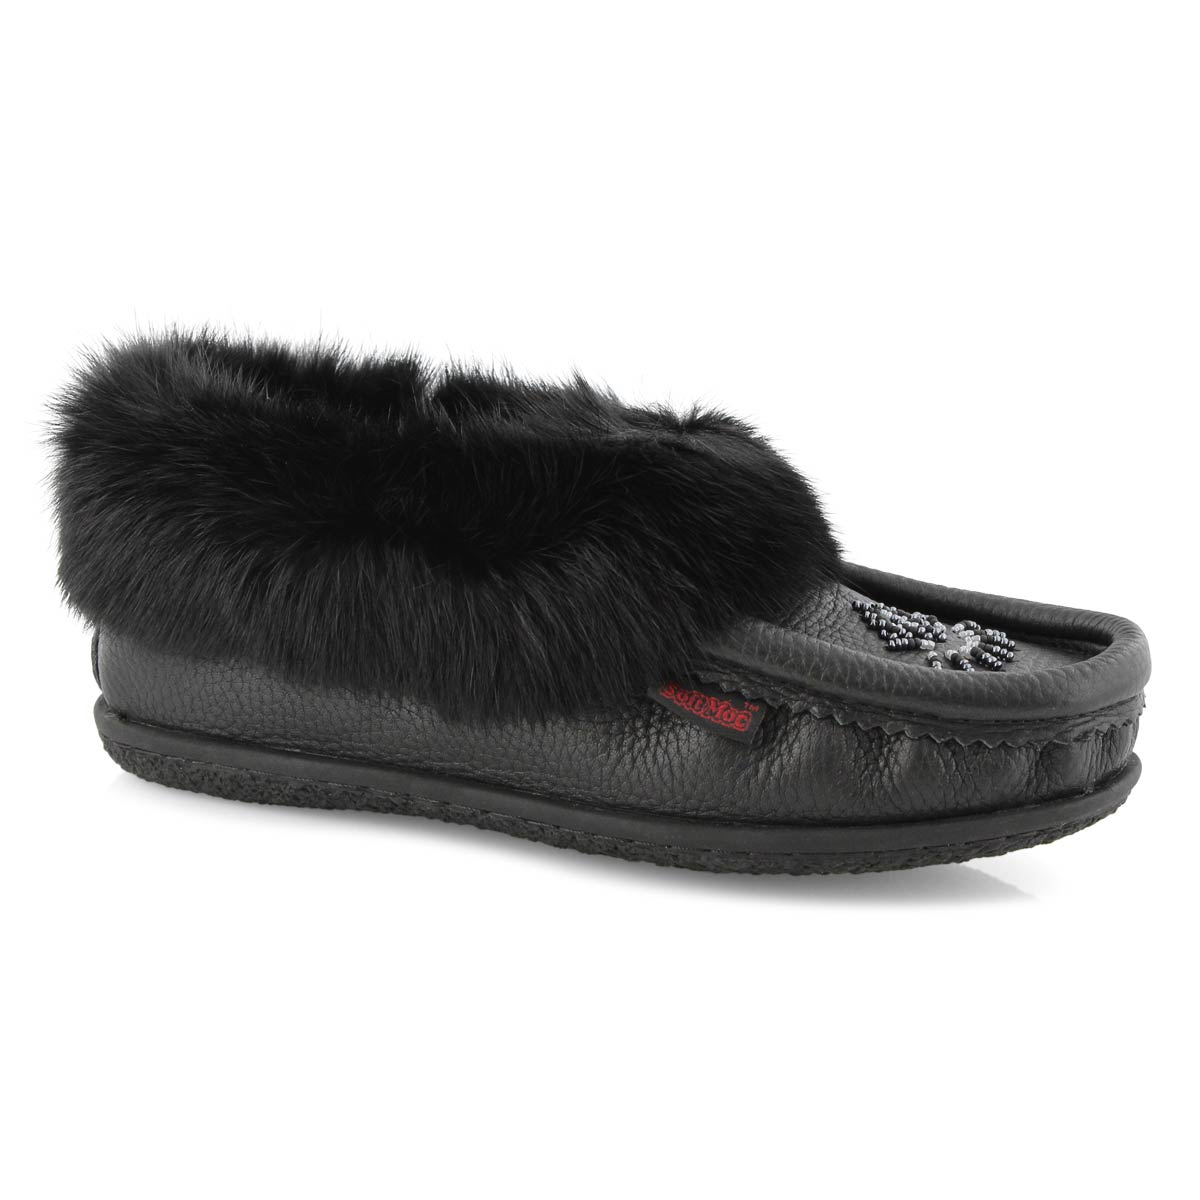 Women's CUTE 4 black leather rabbit fur moccasins